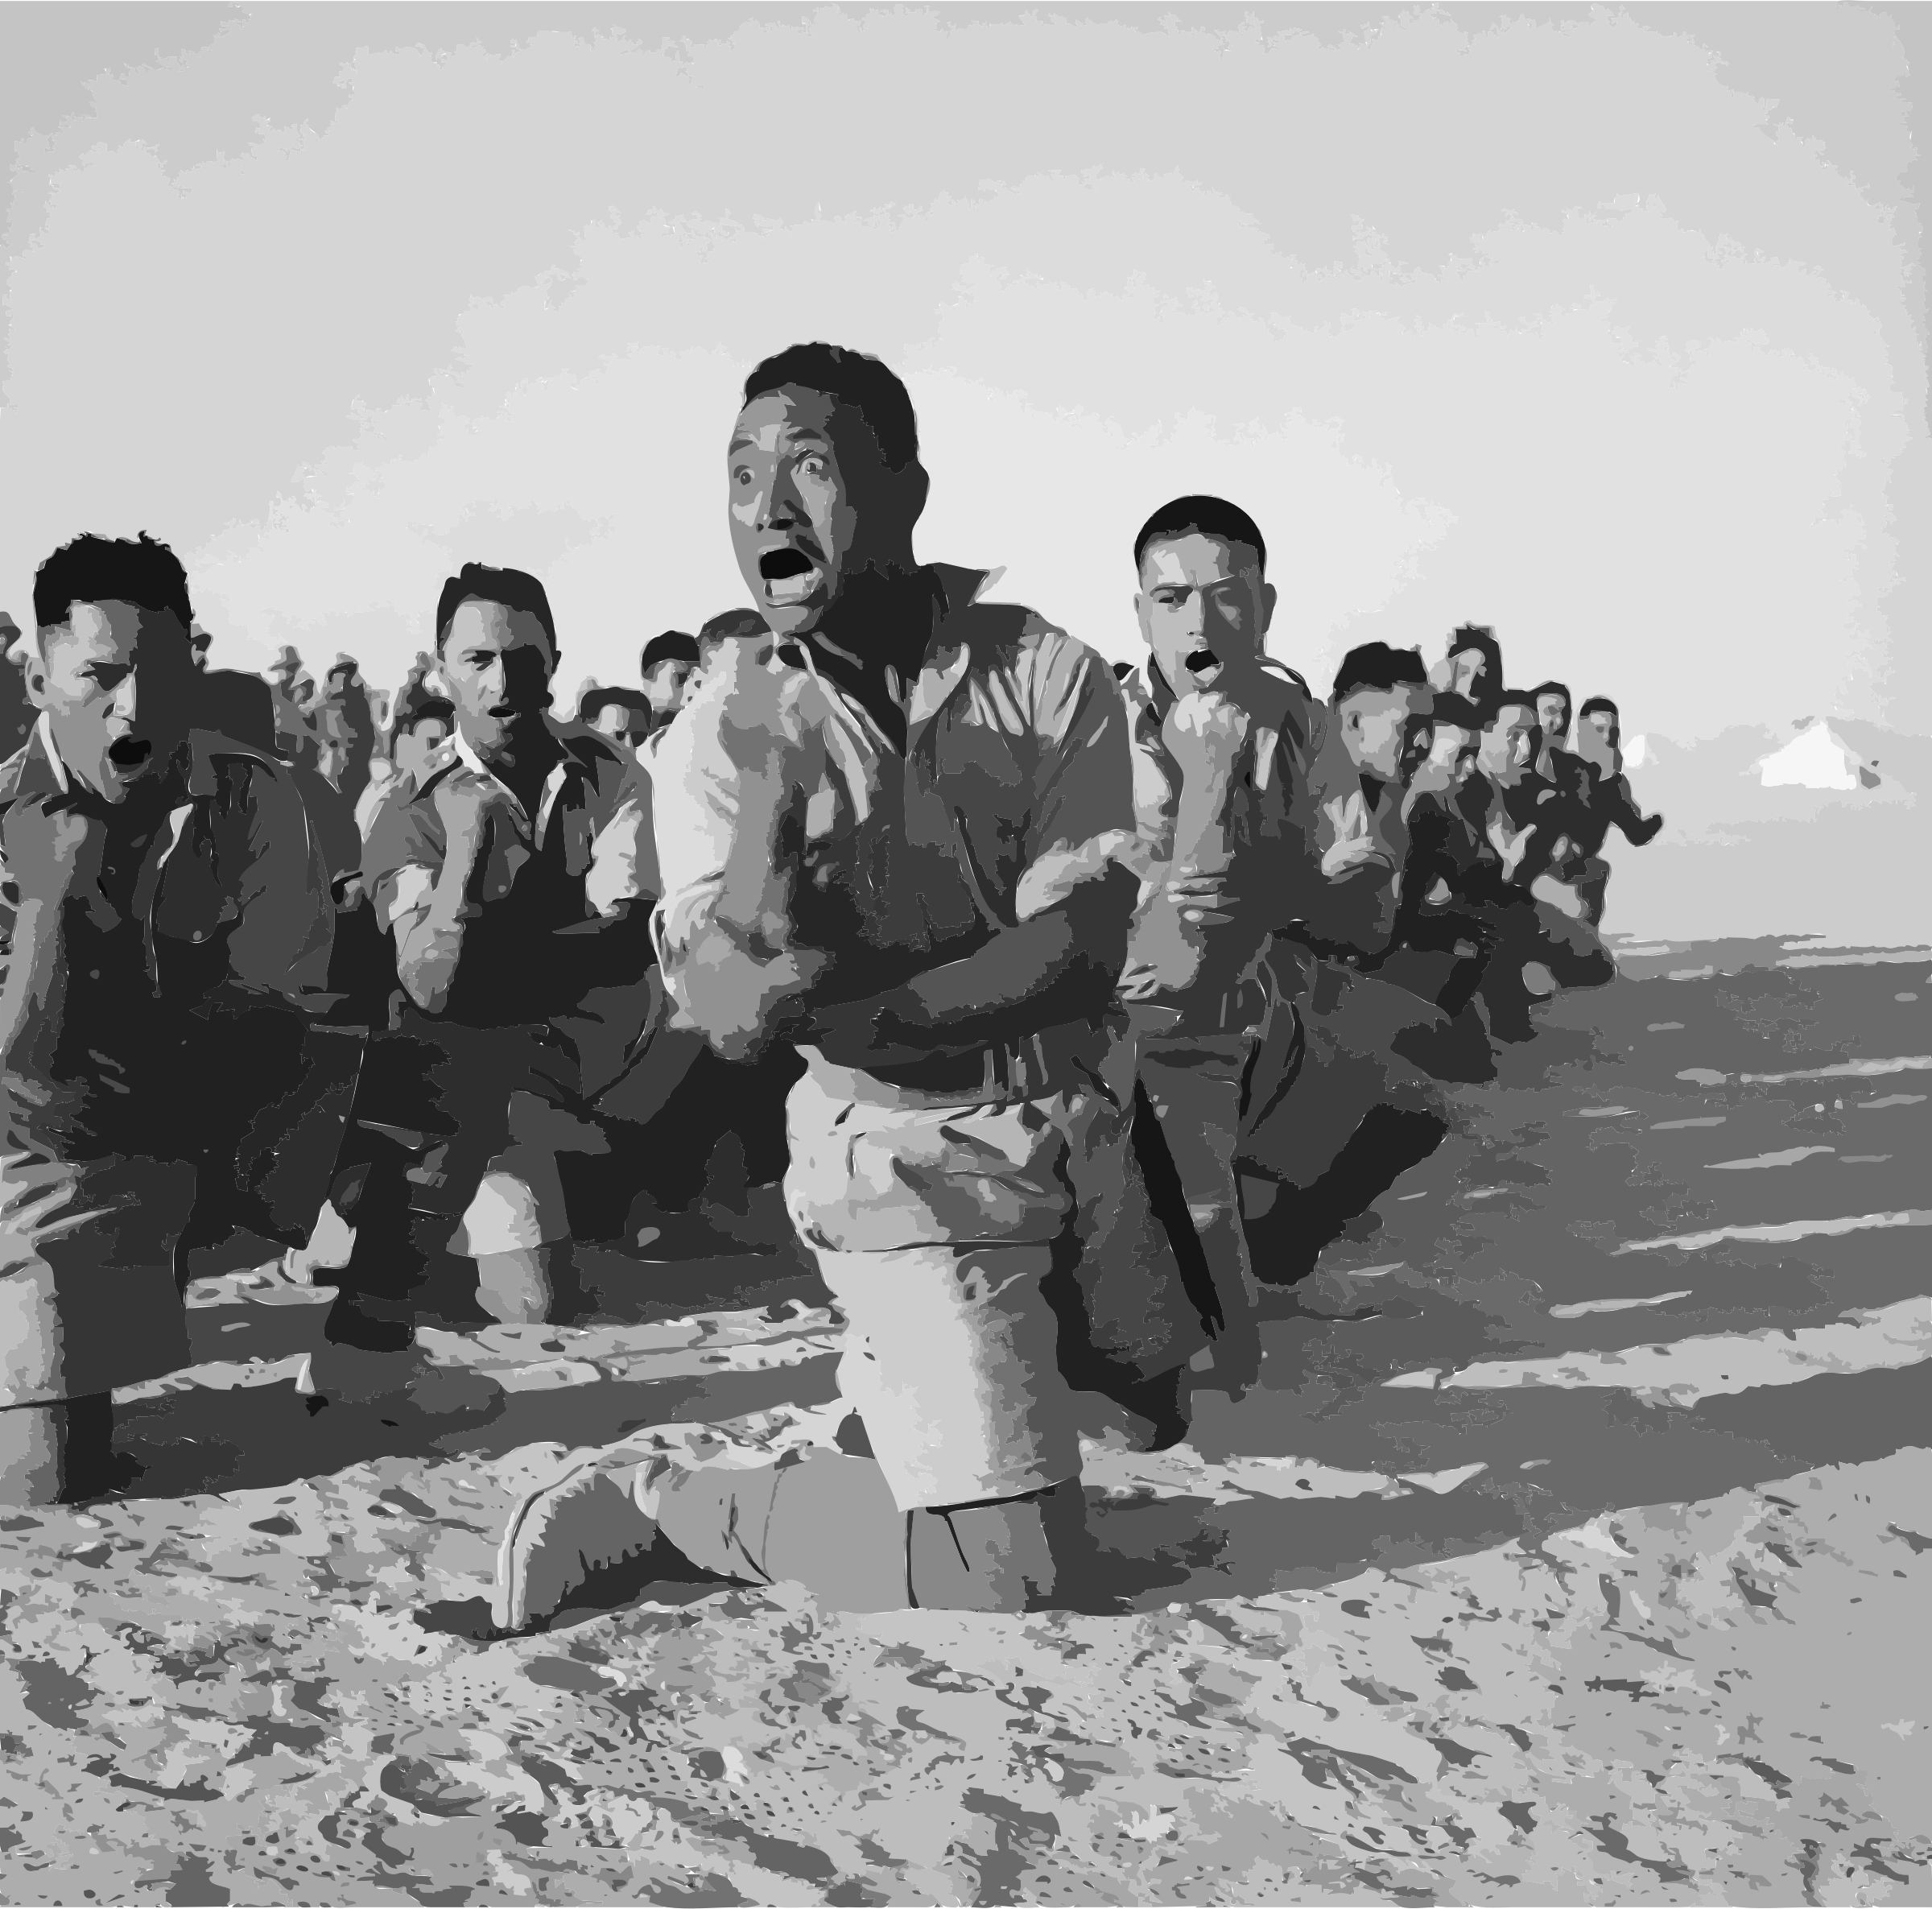 E 003261 E Maoris in North Africa July 1941 by 5ncrcv+exryzbsq0bgao